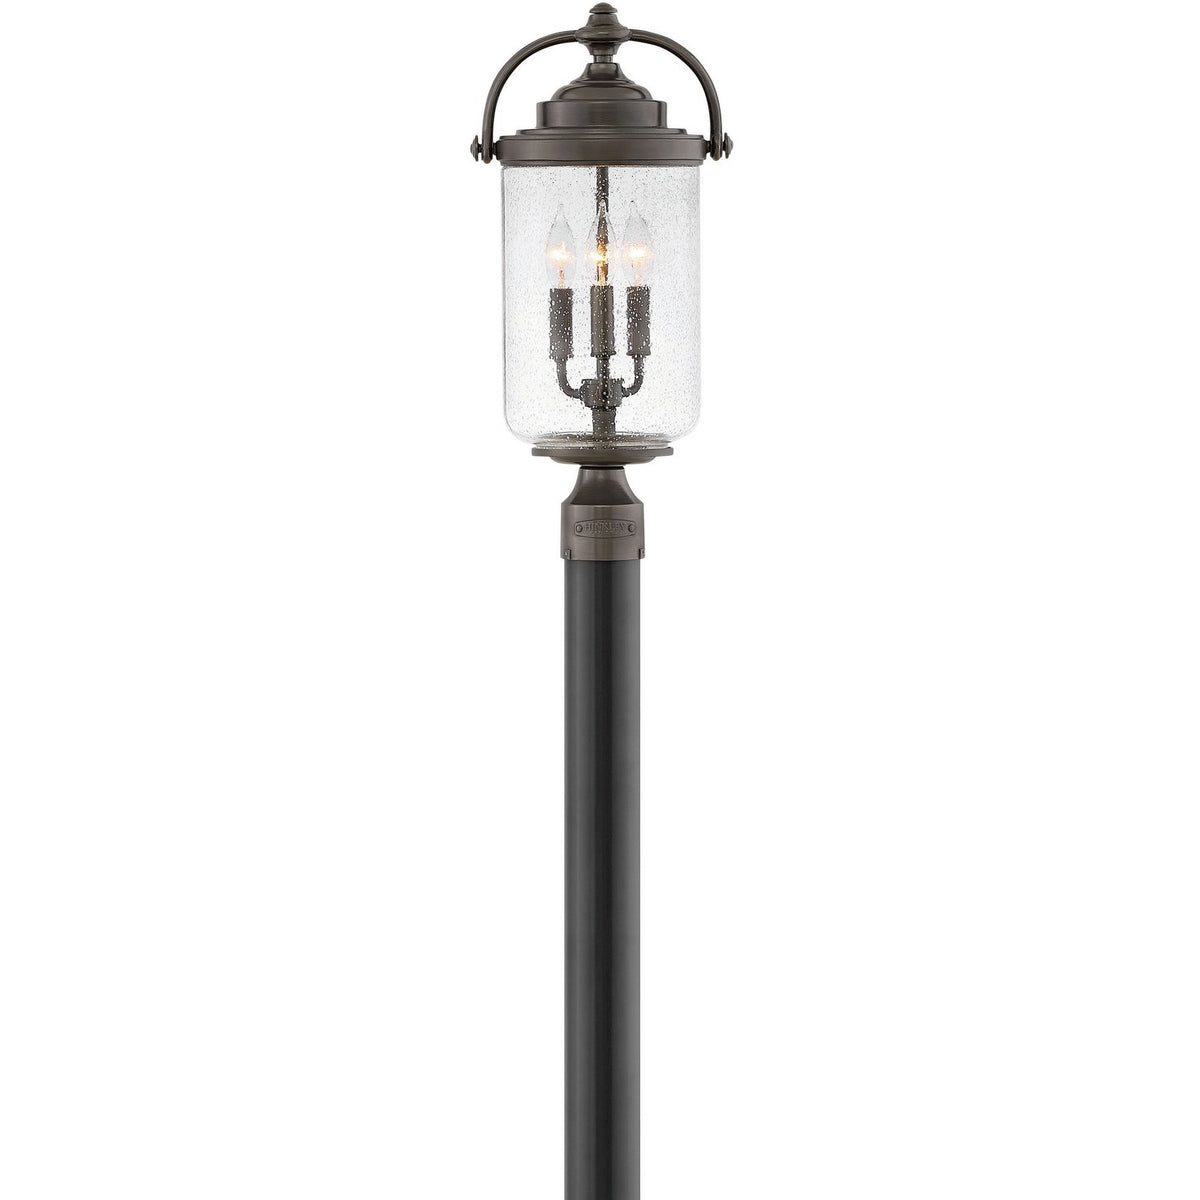 Hinkley Canada - 2757OZ - Three Light Outdoor Lantern - Willoughby - Oil Rubbed Bronze